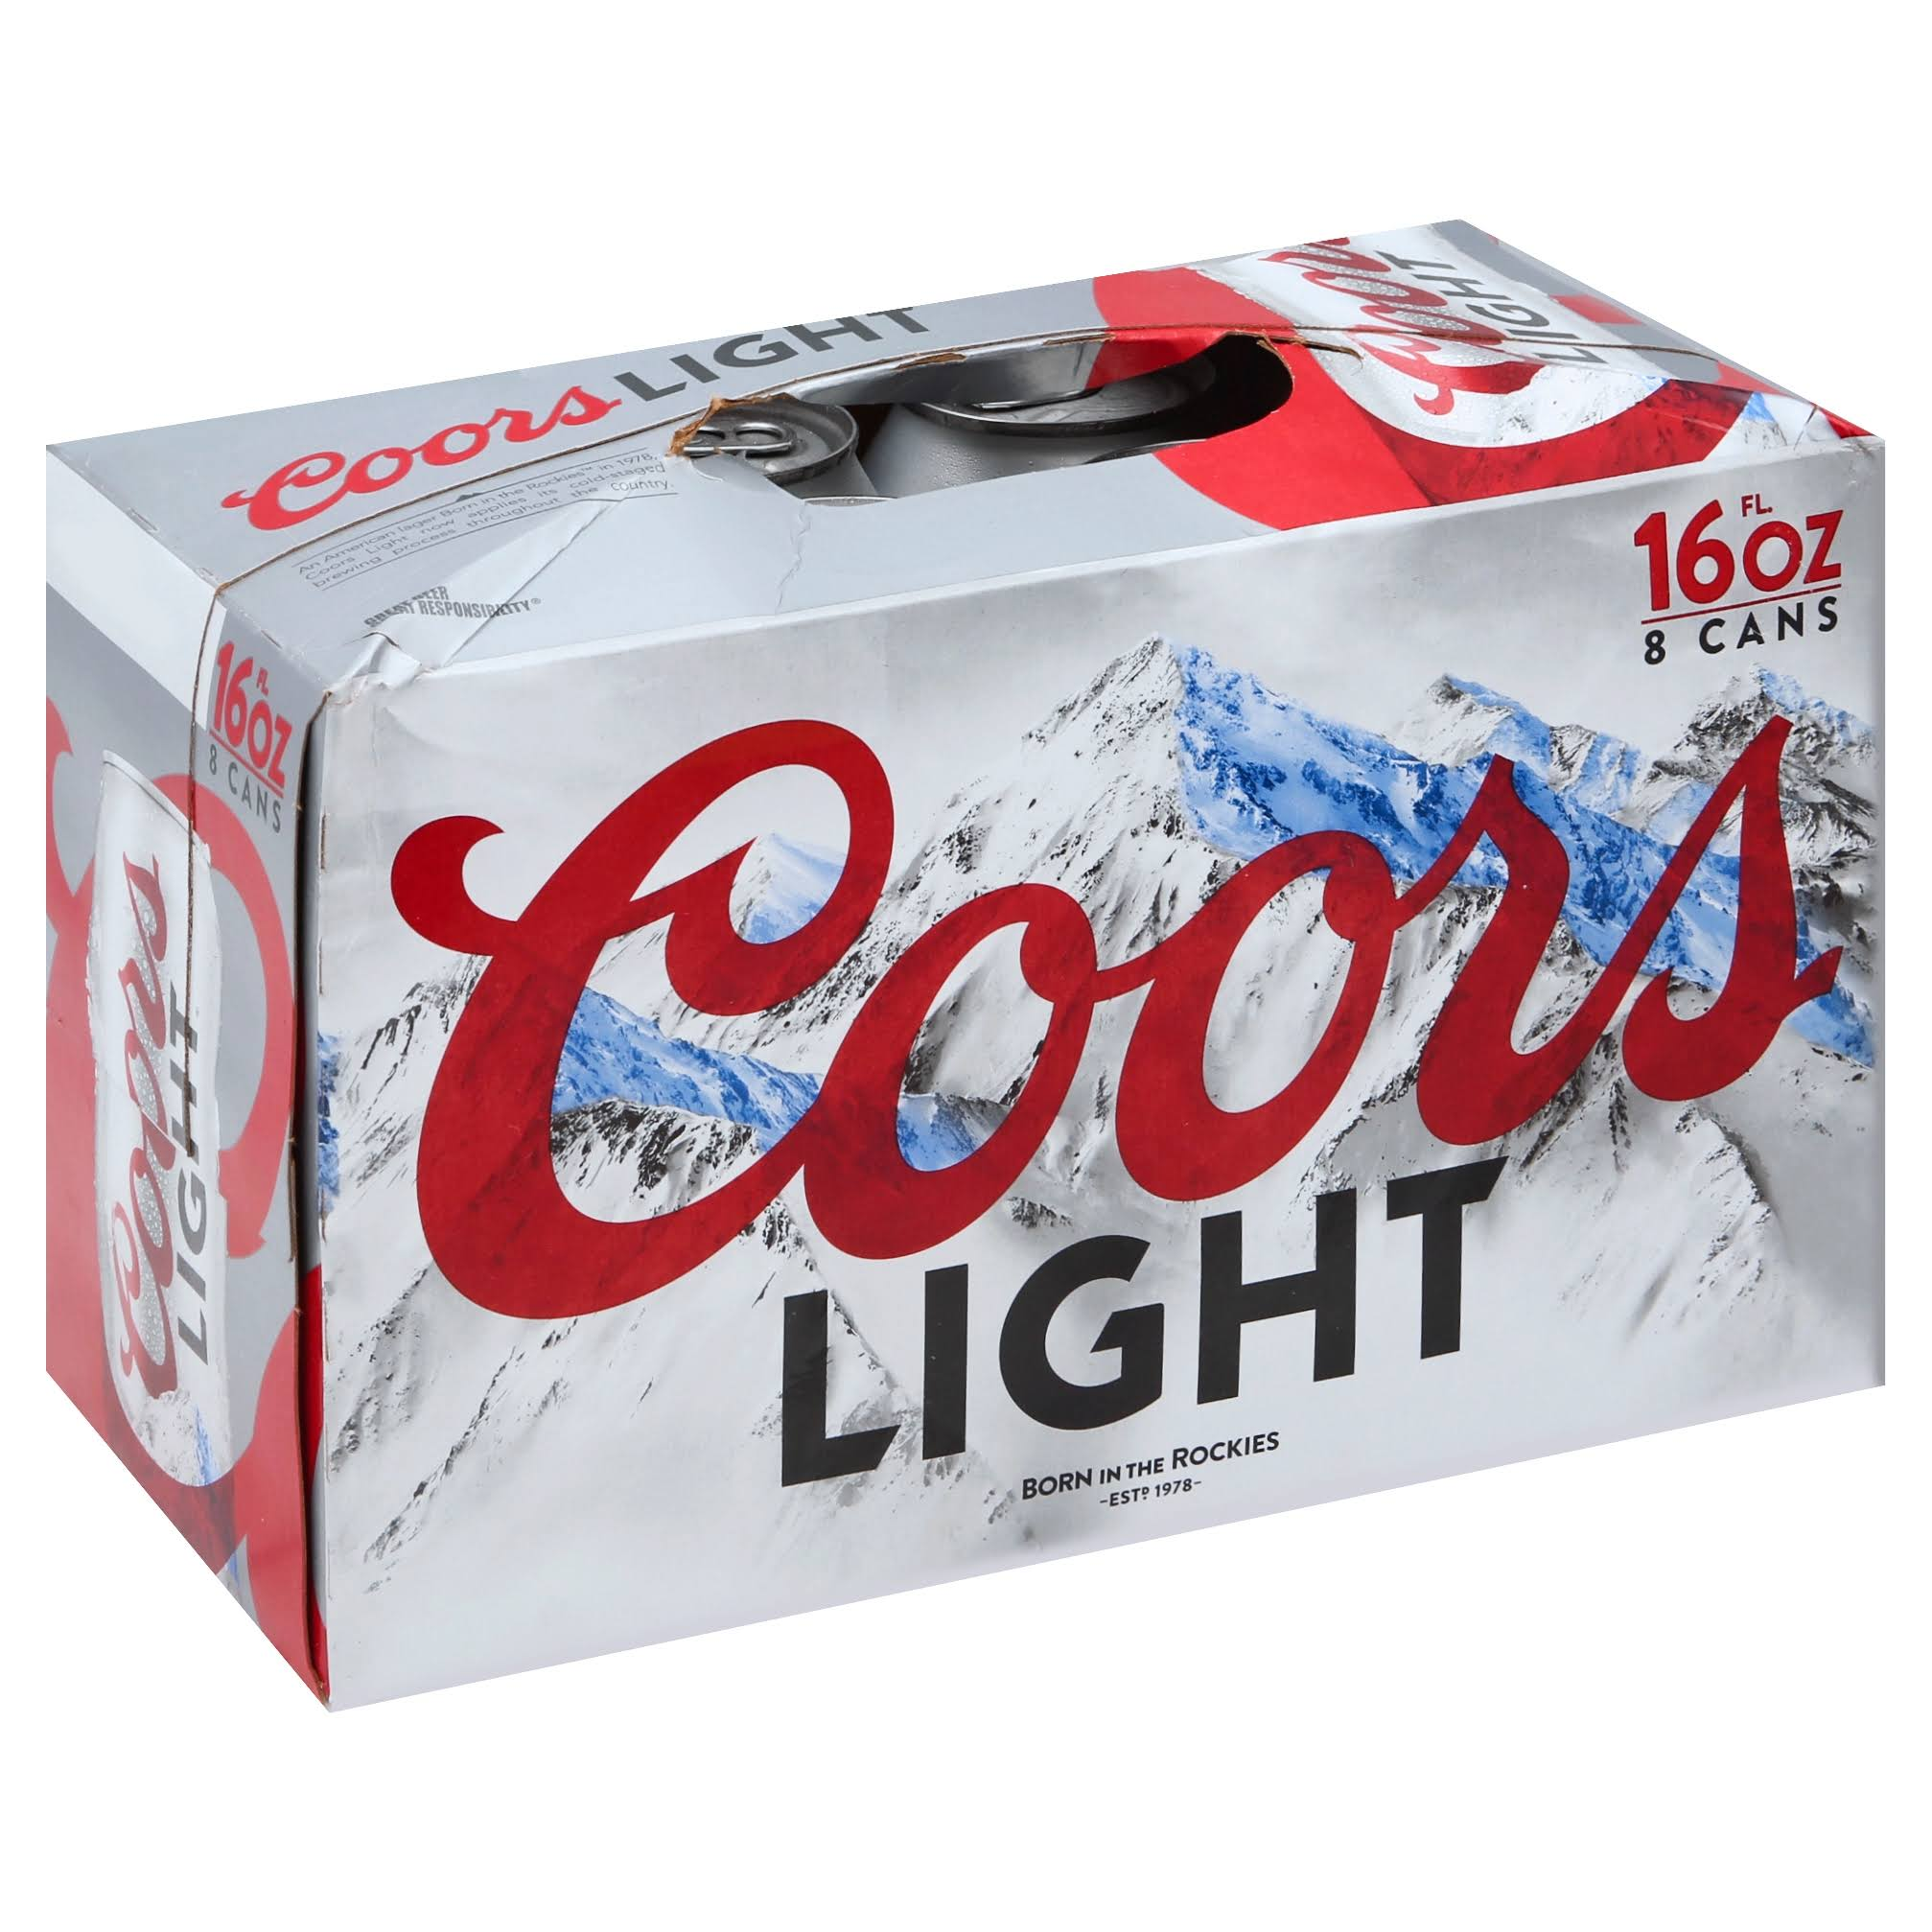 Coors Light Beer - 8 pack, 16 fl oz cans